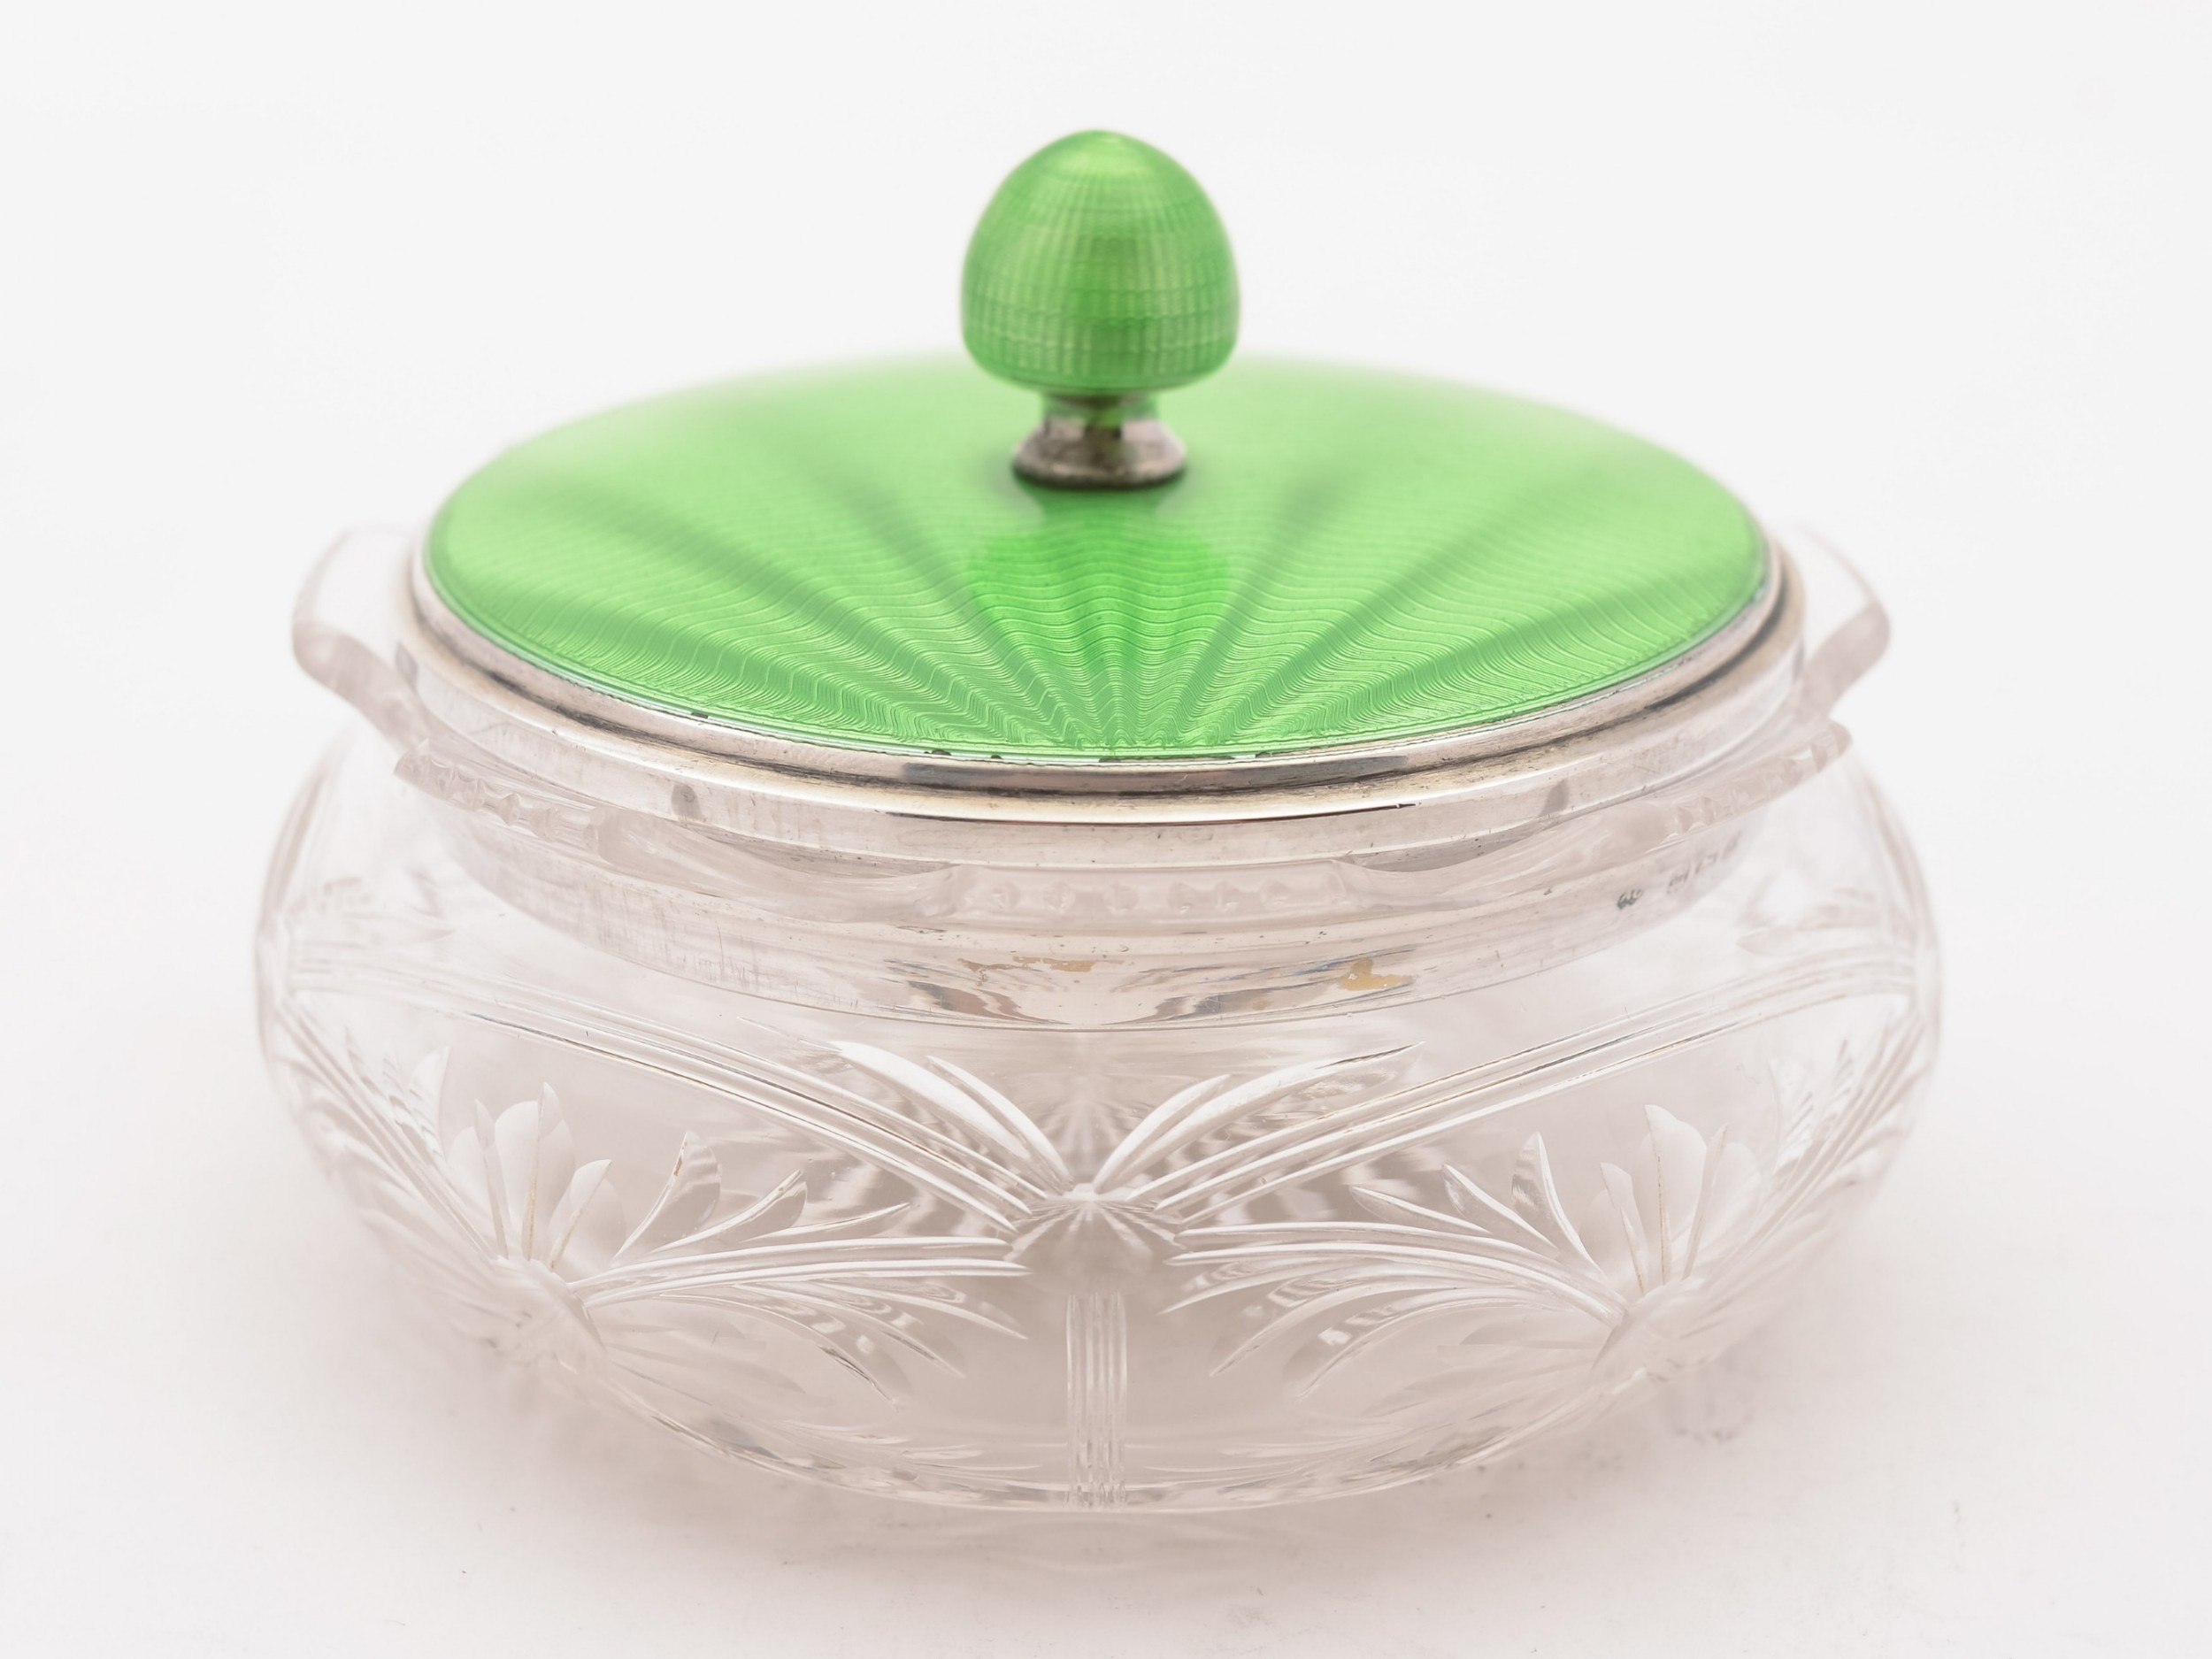 art deco silver and enamel topped jar 1934